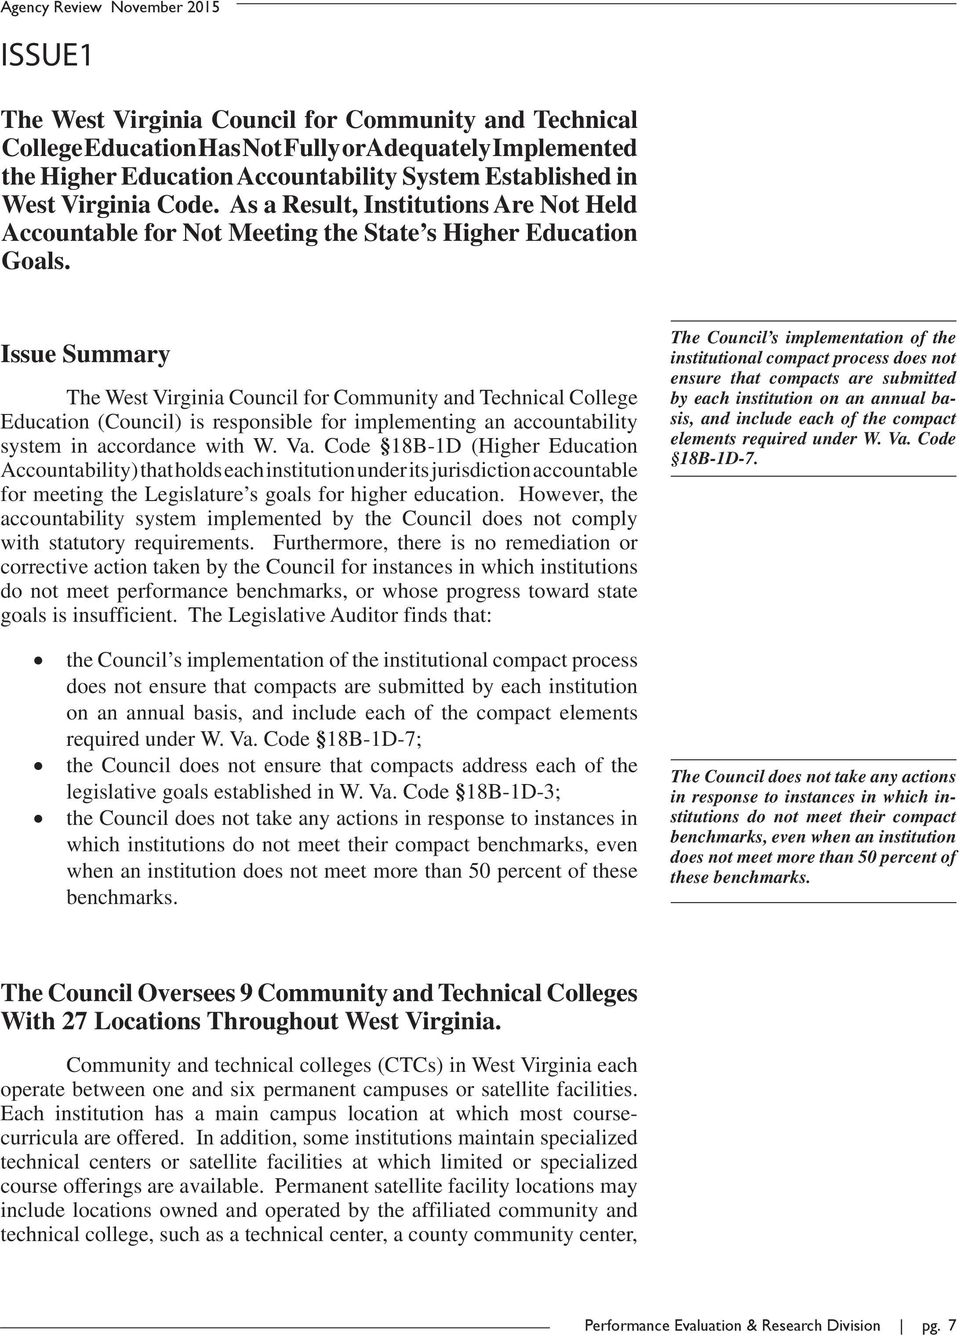 Issue Summary The West Virginia Council for Community and Technical College Education (Council) is responsible for implementing an accountability system in accordance with W. Va.